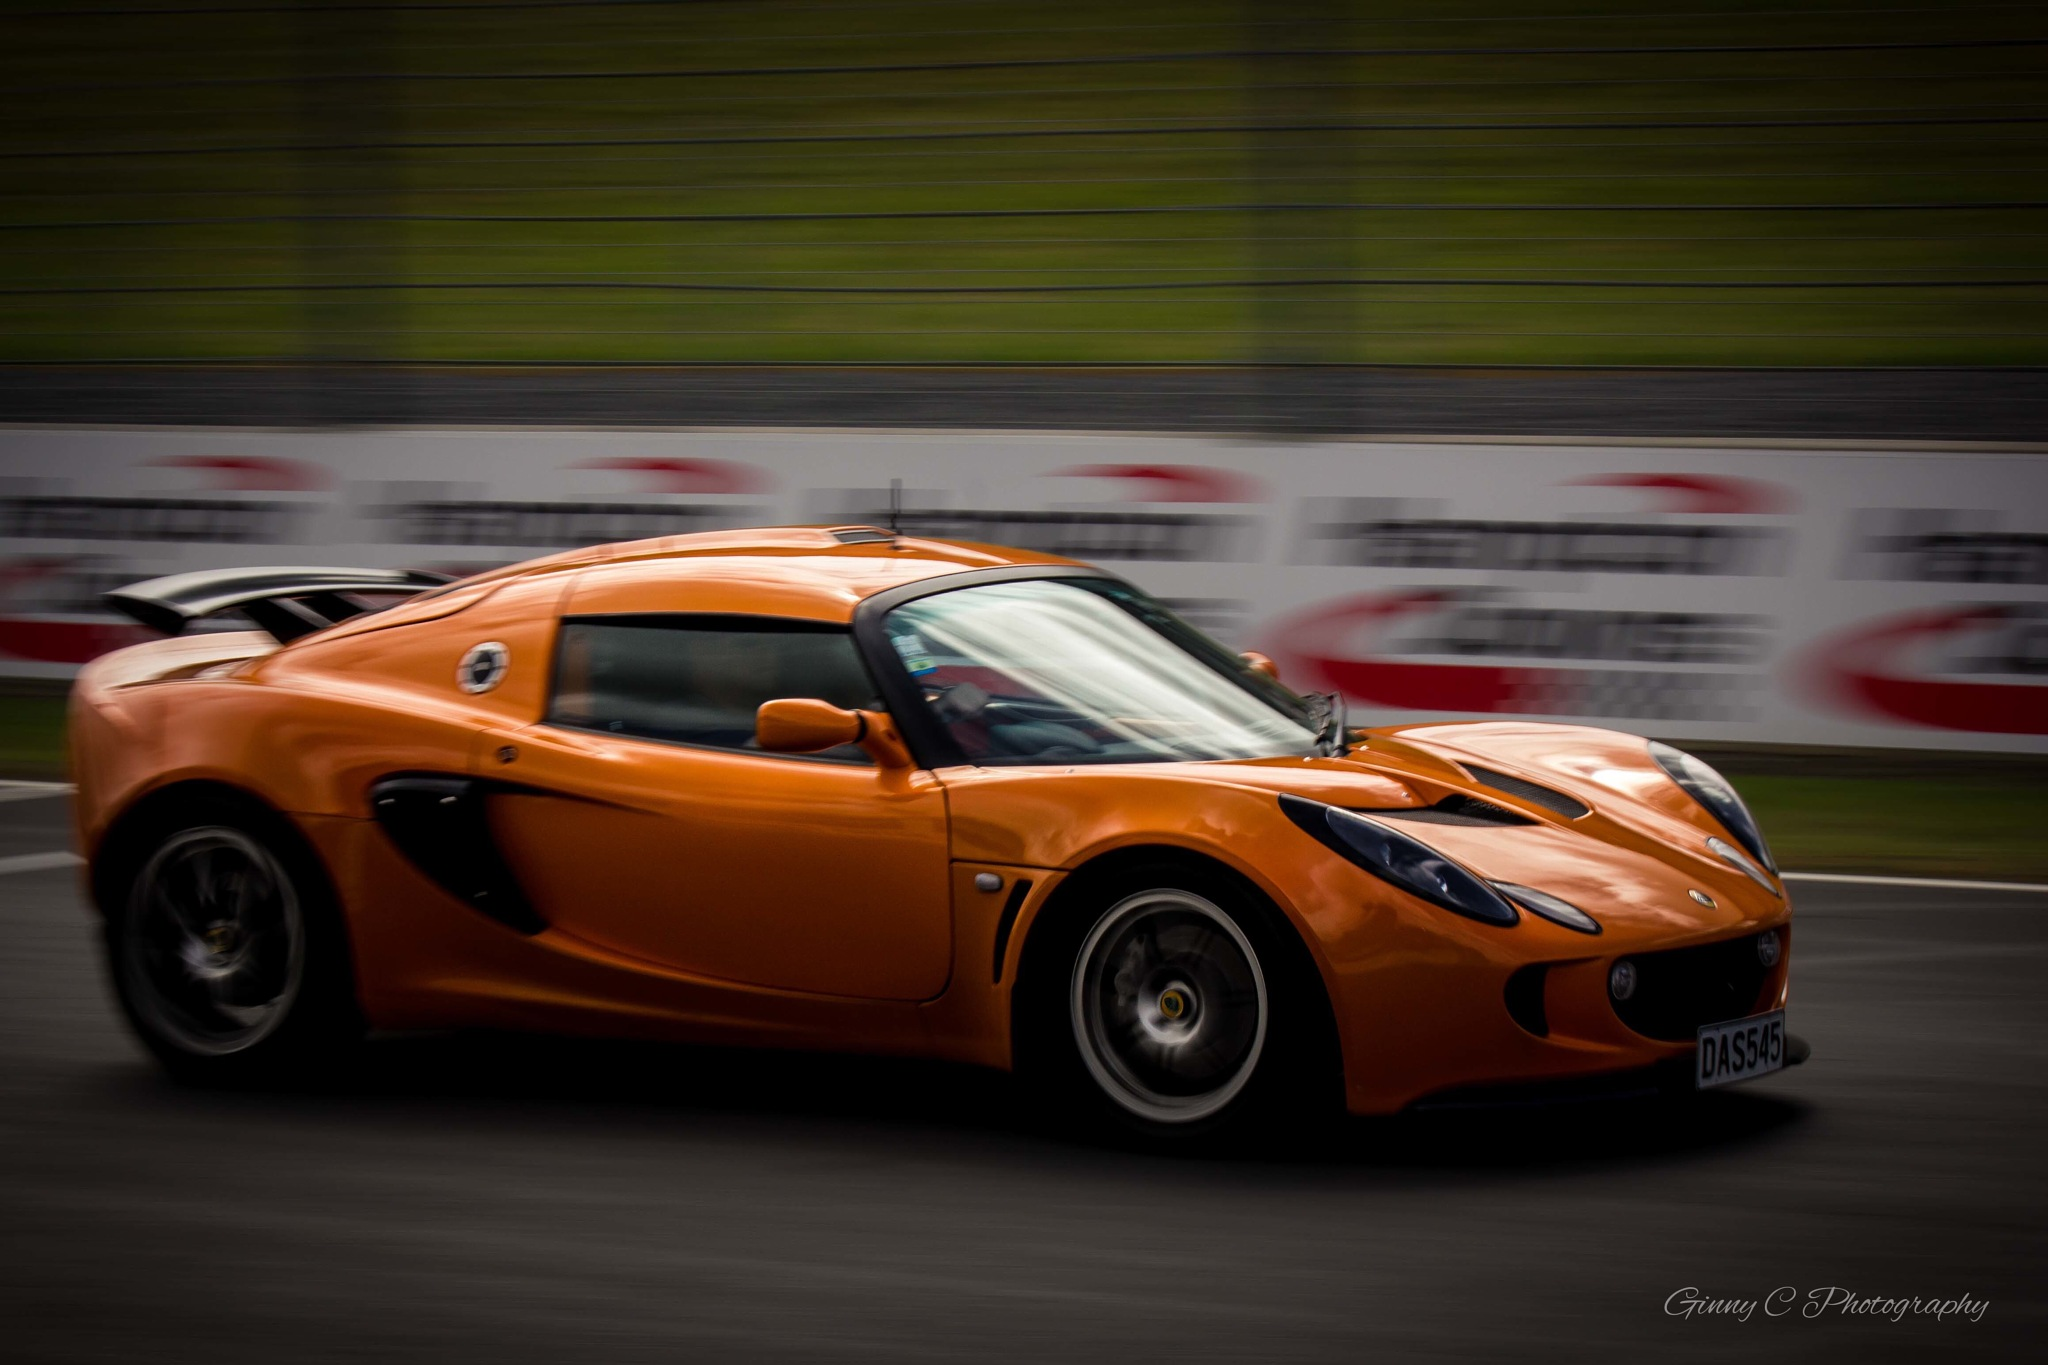 Lotus Exige by GinnyCPhotography